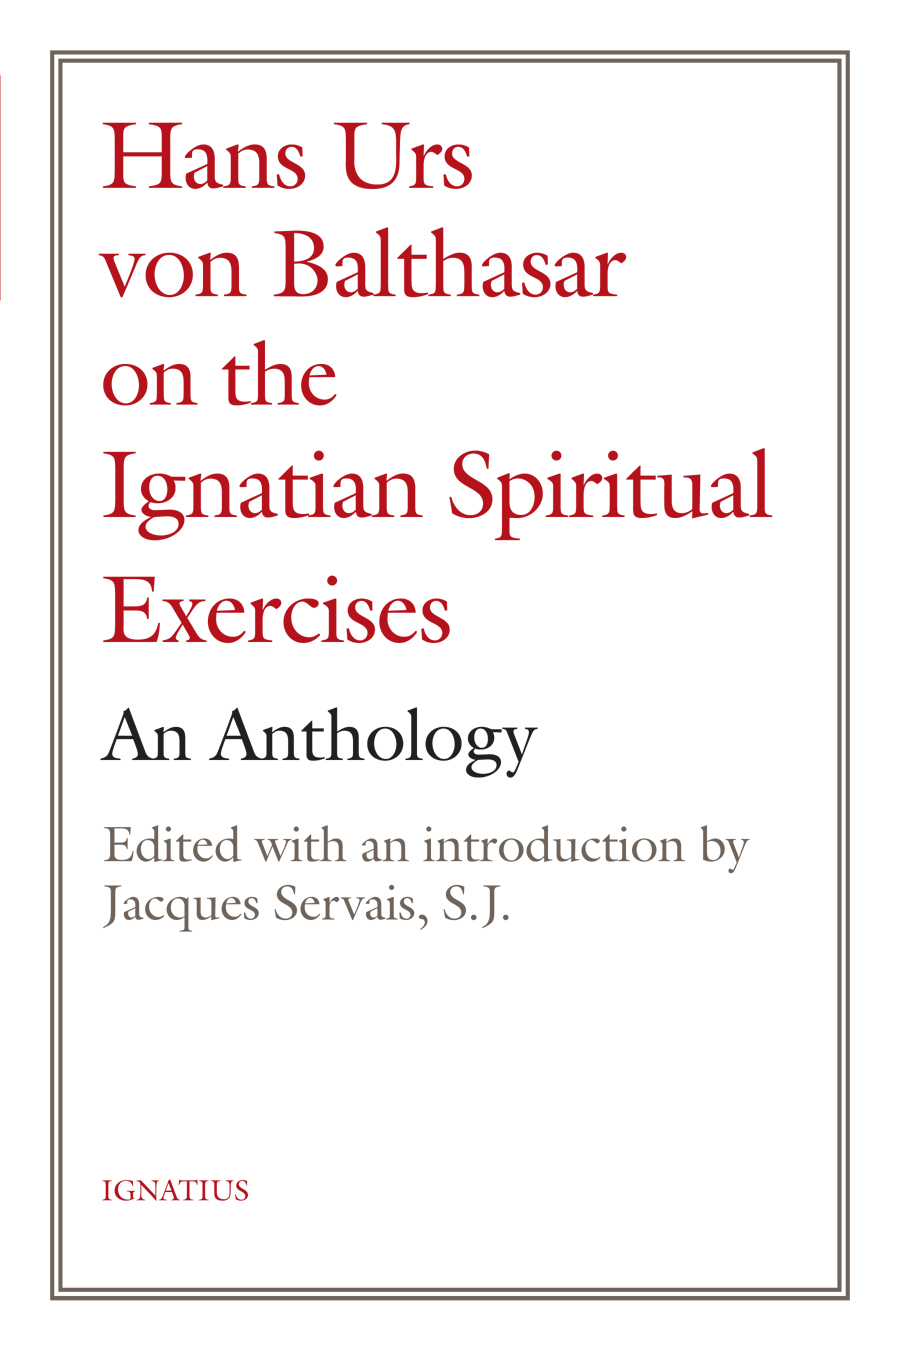 Hans Urs von Balthasar on the Ignatian Spiritual Exercises